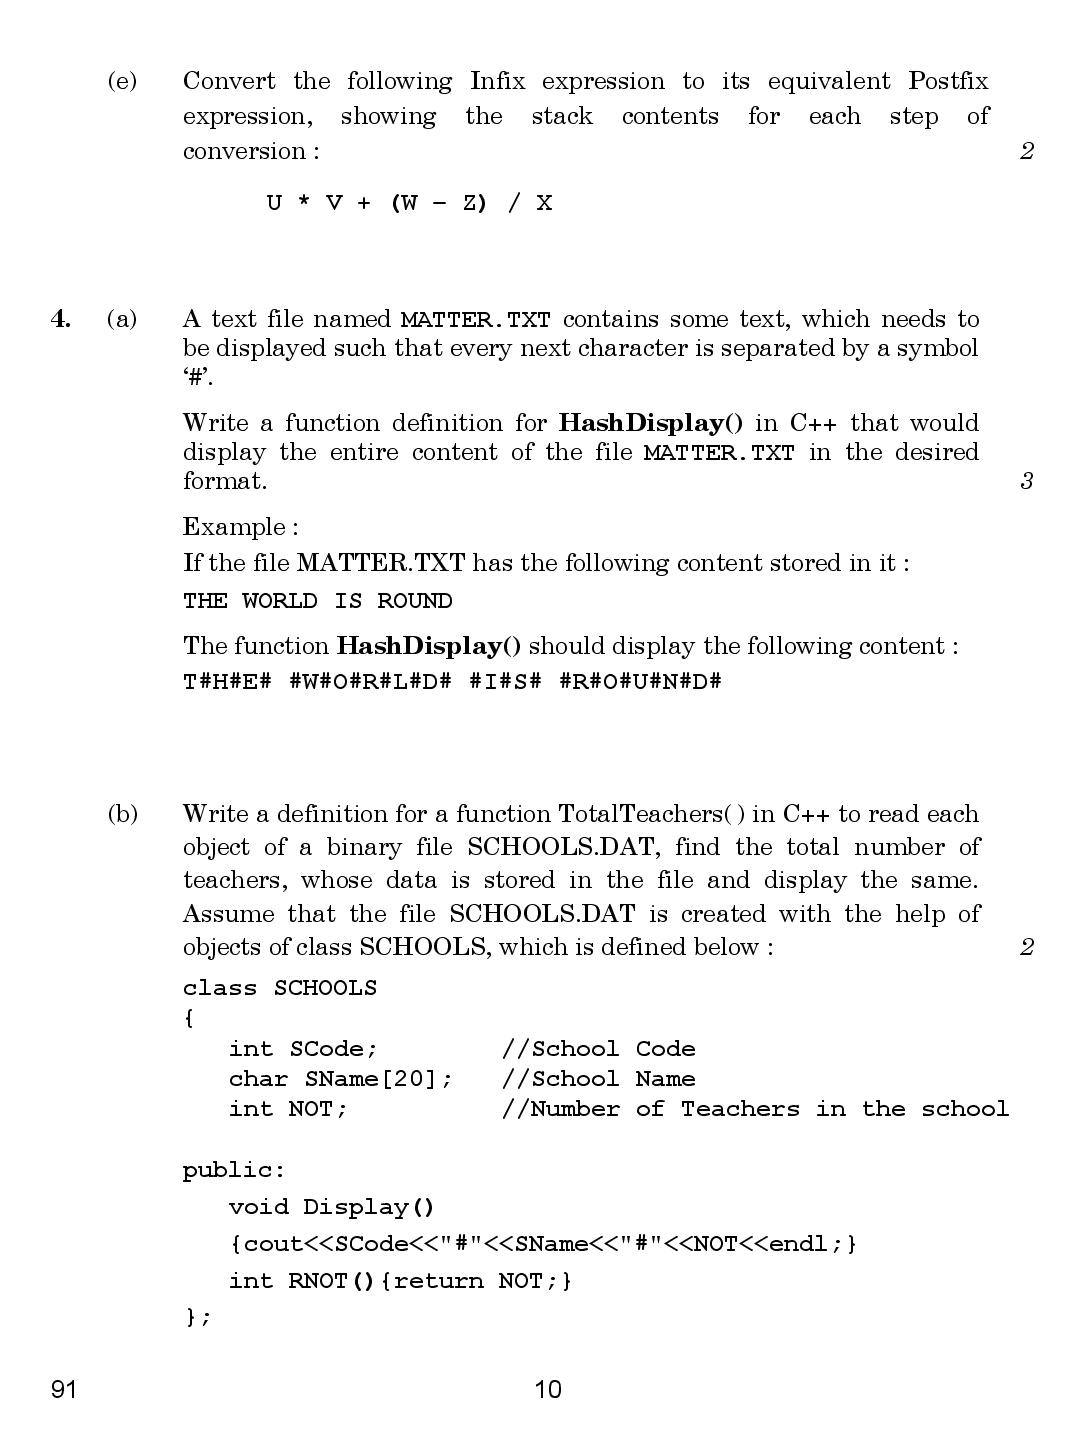 CBSE Class 12 Computer Science 2018 Question Paper